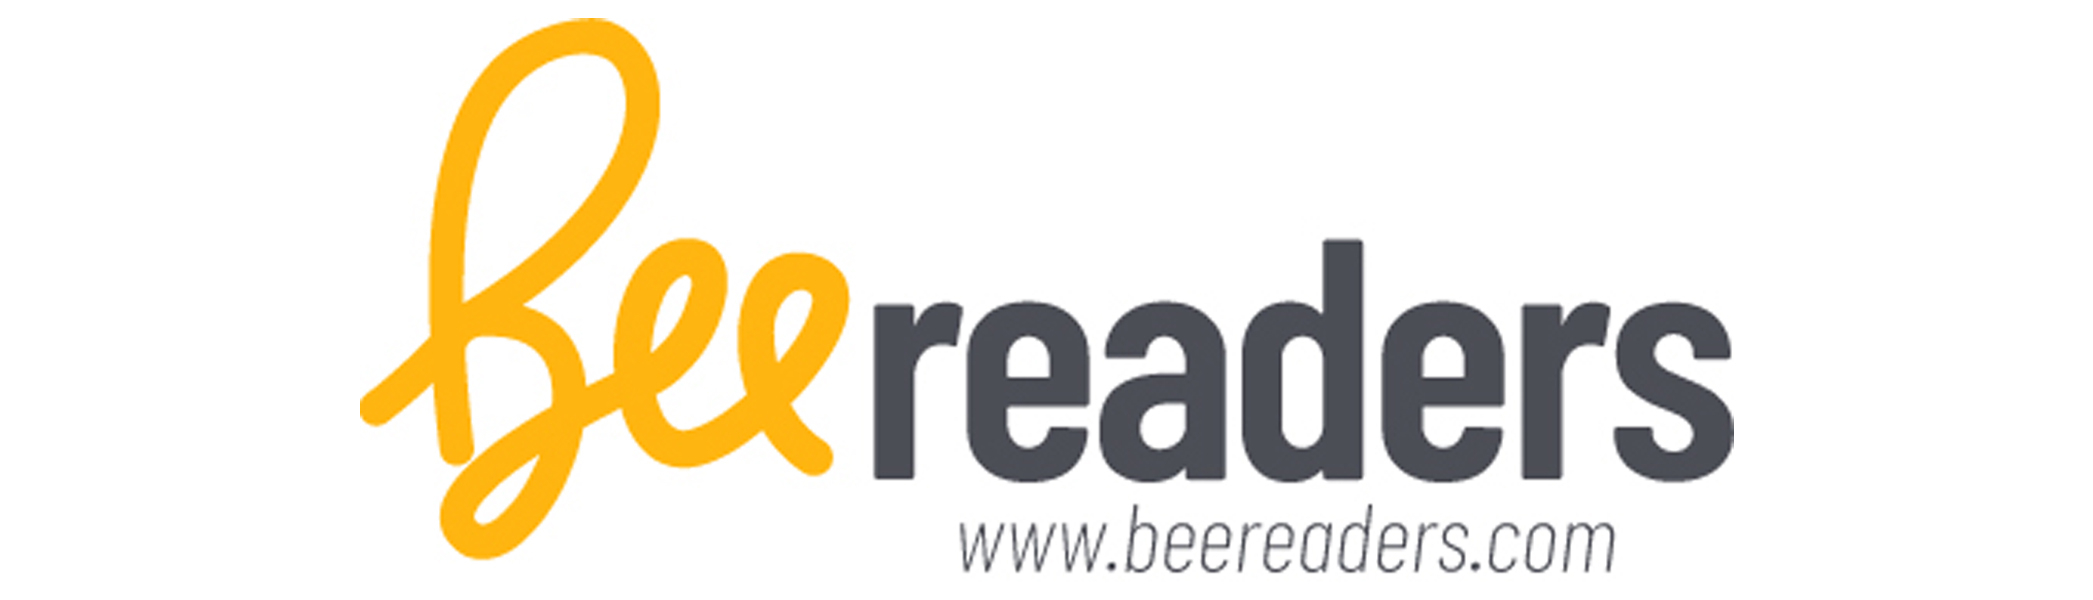 Beereaders_2021-2